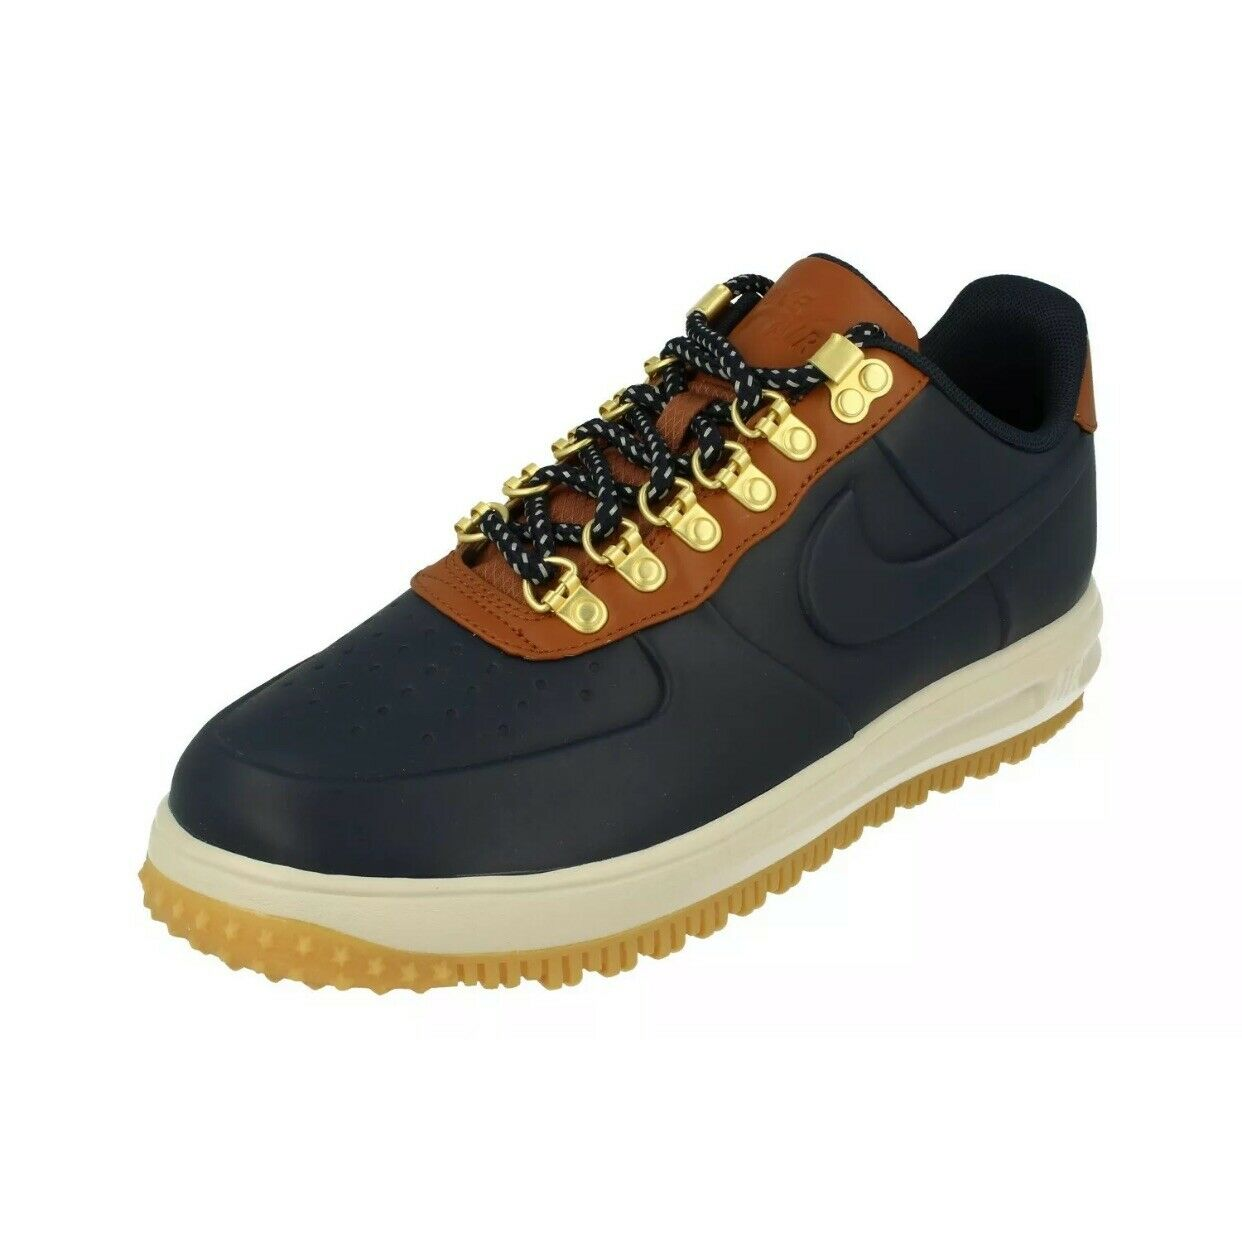 Nike Lunar Force 1 Duckboot Low shoes Obsidian Saddle Brown AA1125-400 Men's NEW